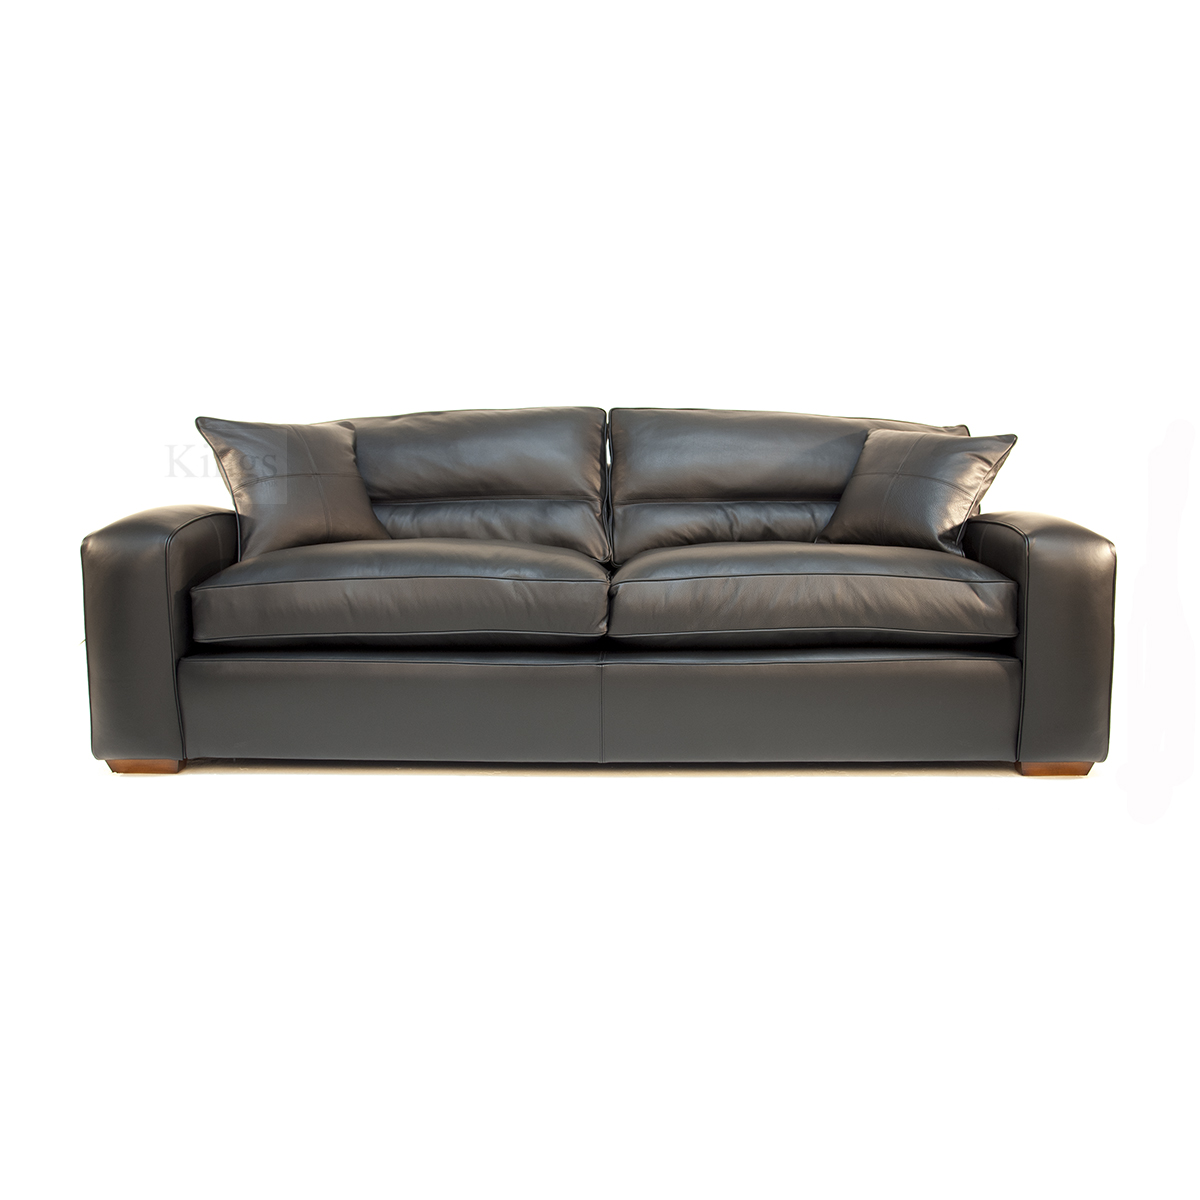 Duresta Upholstery Grand Panther Sofa In Nero Black Leather: sofa aufpolstern